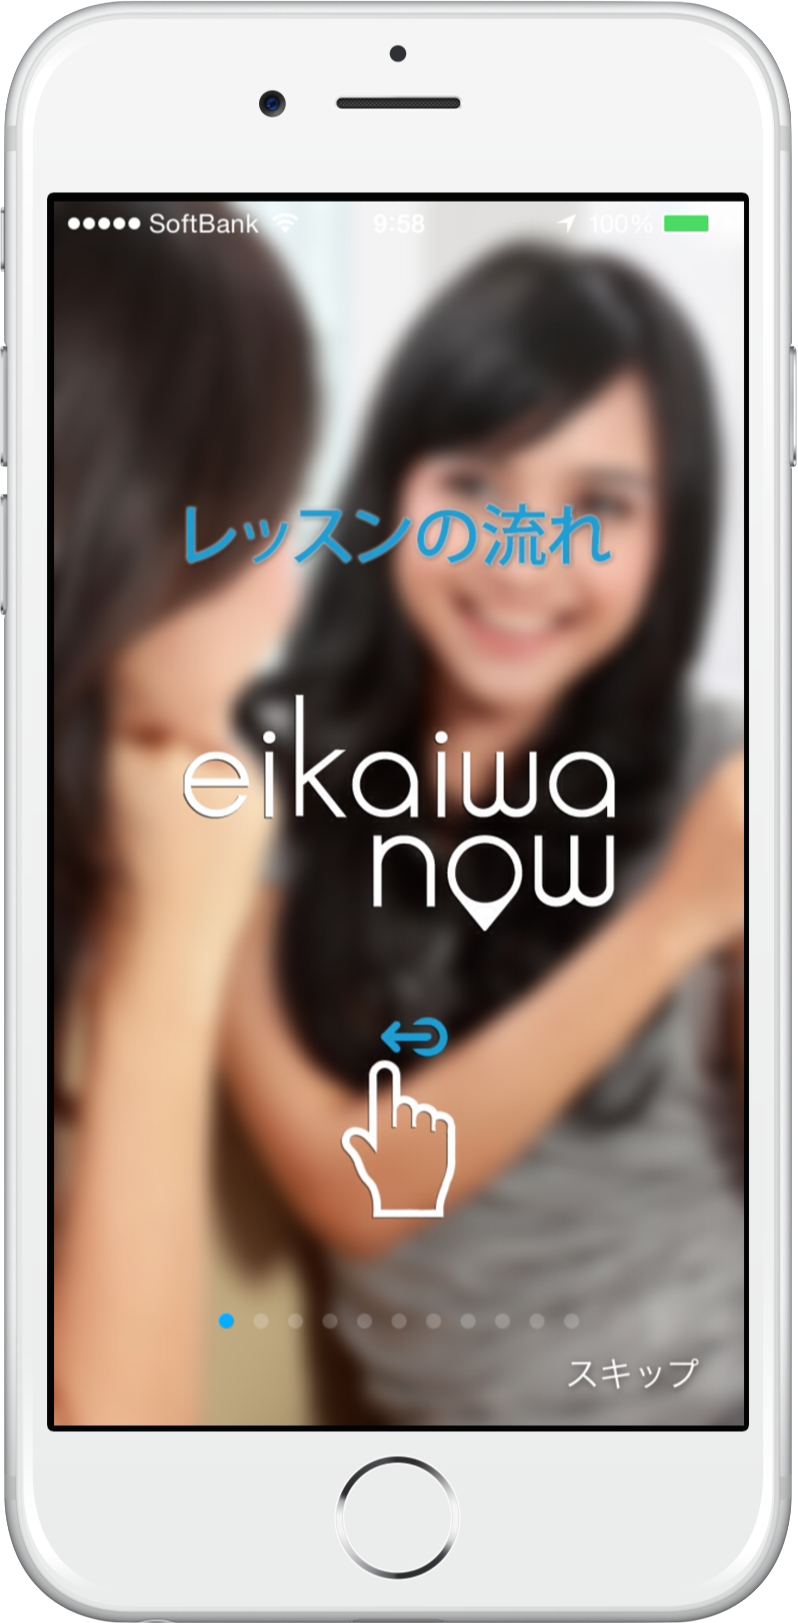 eikaiwaNOW - レッスンの流れ - JPN - 0_iphone6_silver_portrait.png